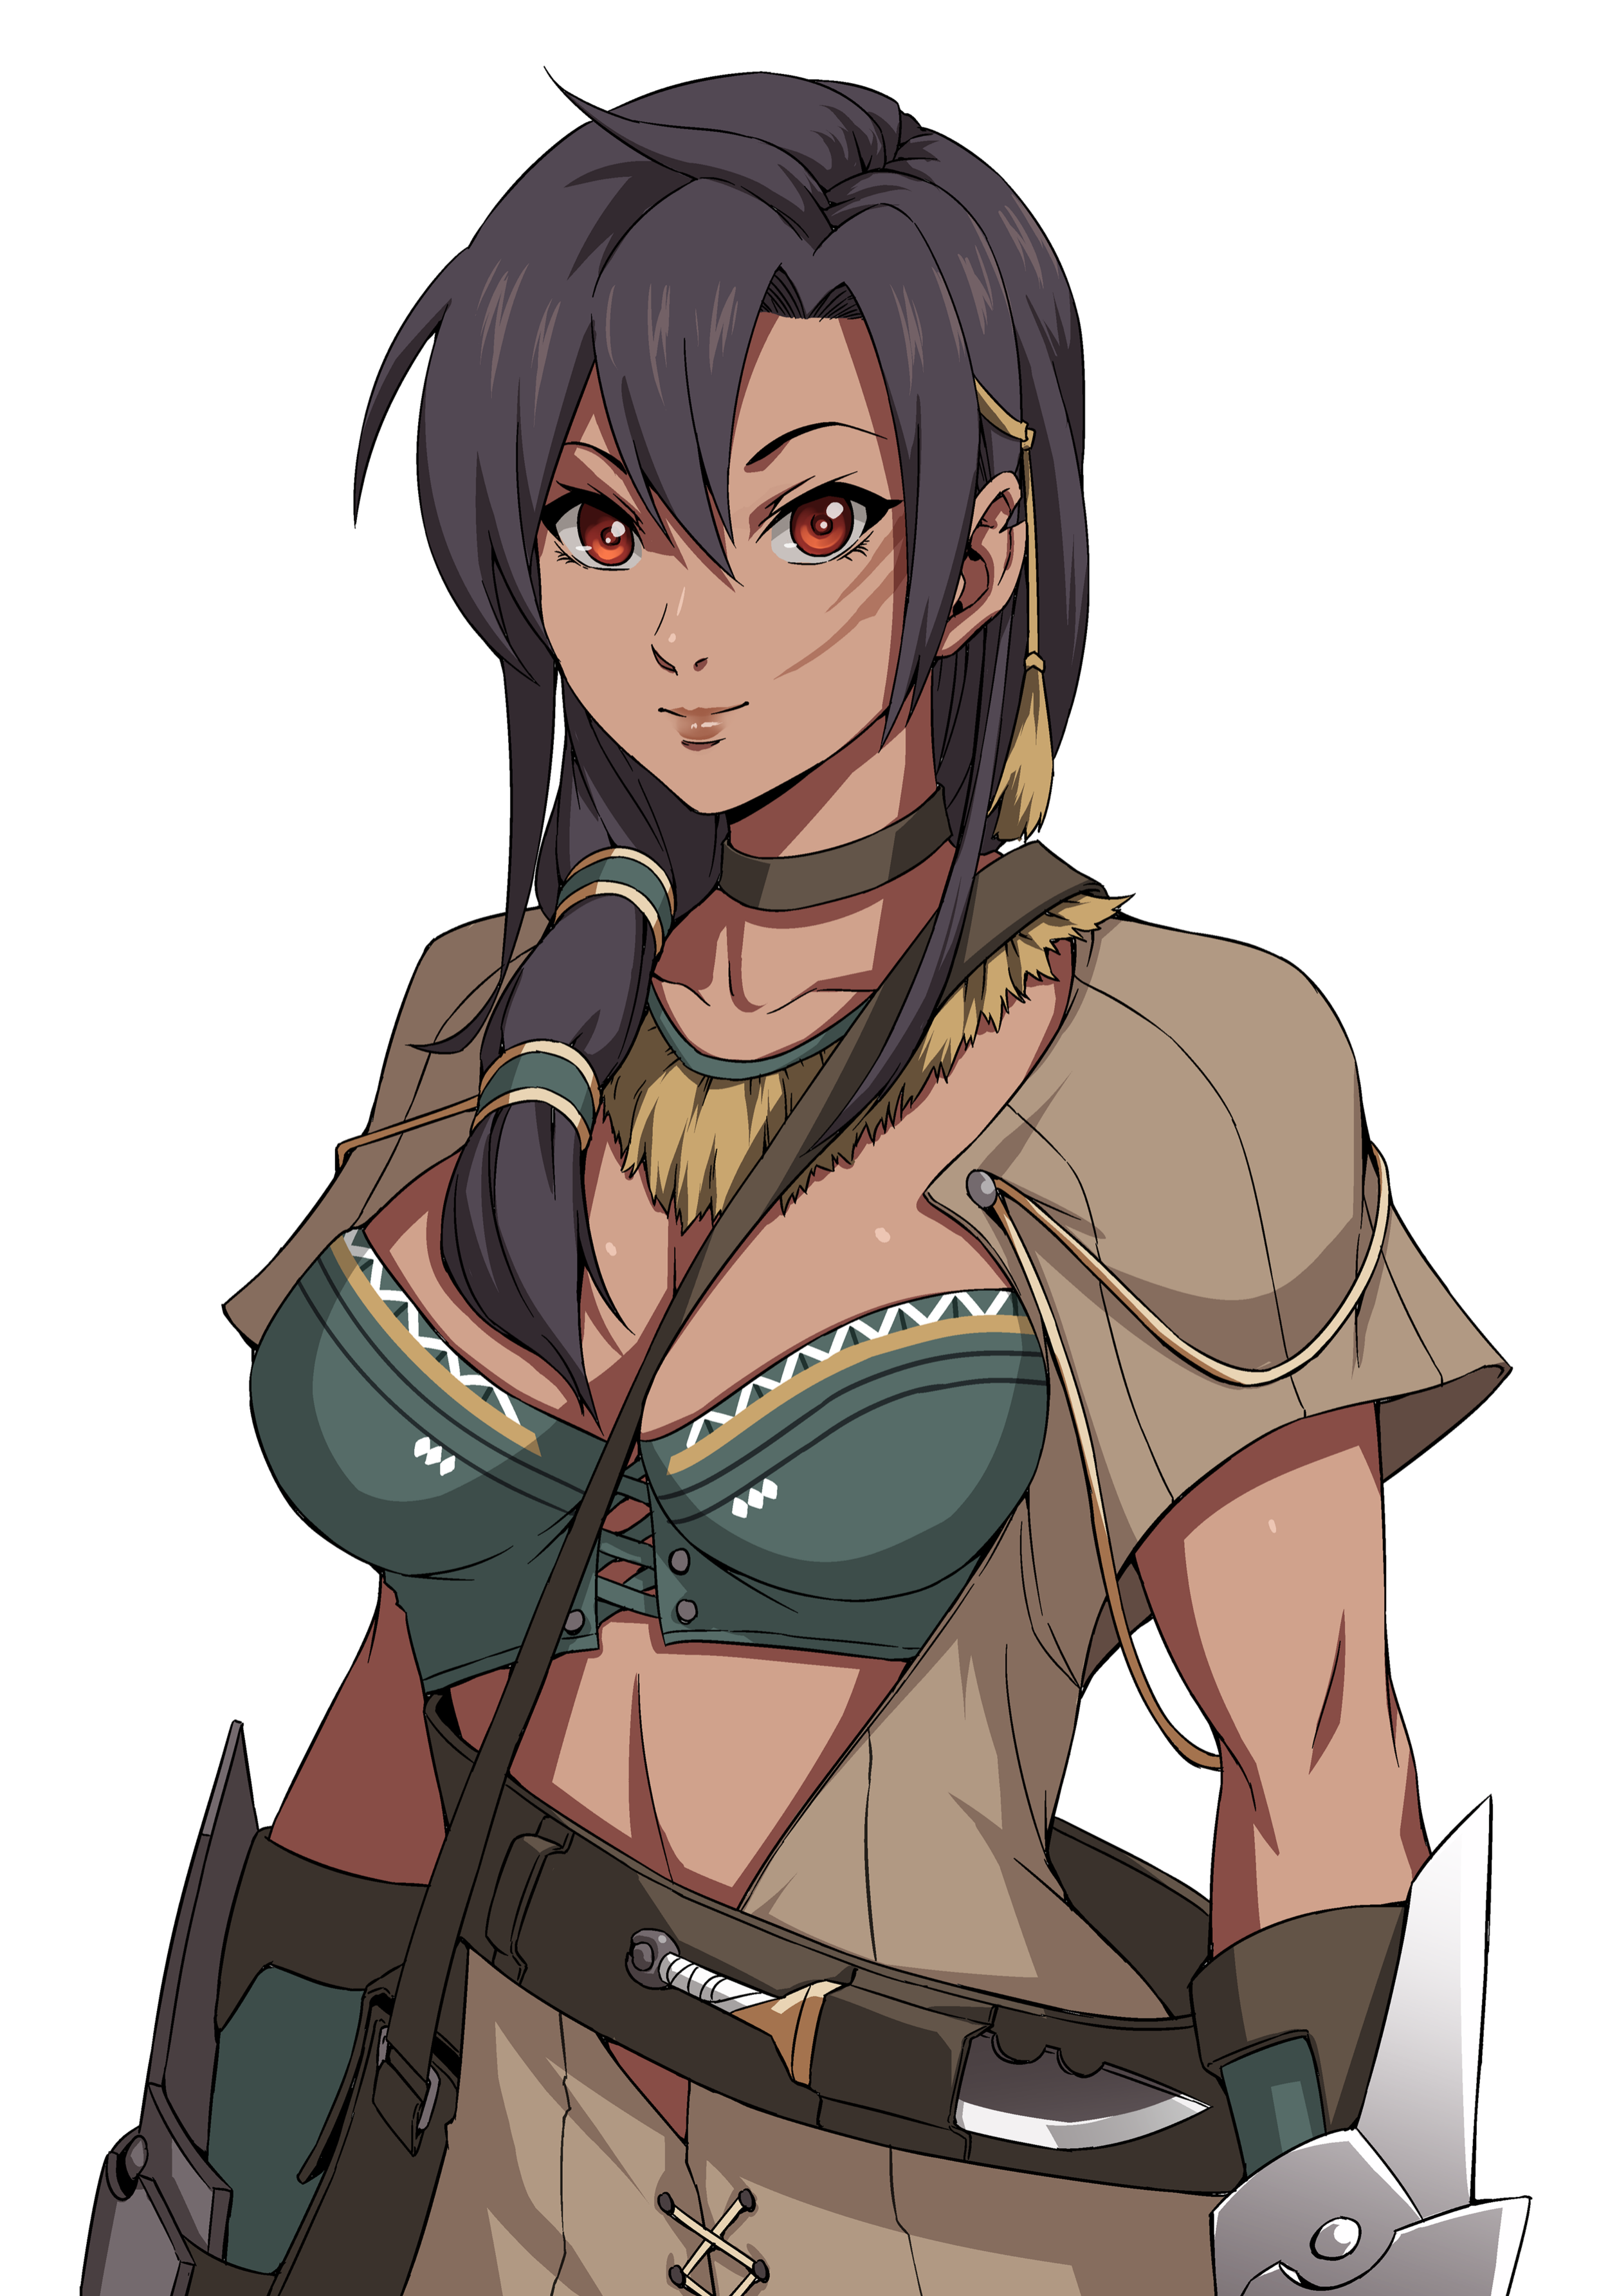 A Tribal monster hunter obsessed with mastery of the cooking arts. She comes to the palace to craft a legendary dish for the Empress.